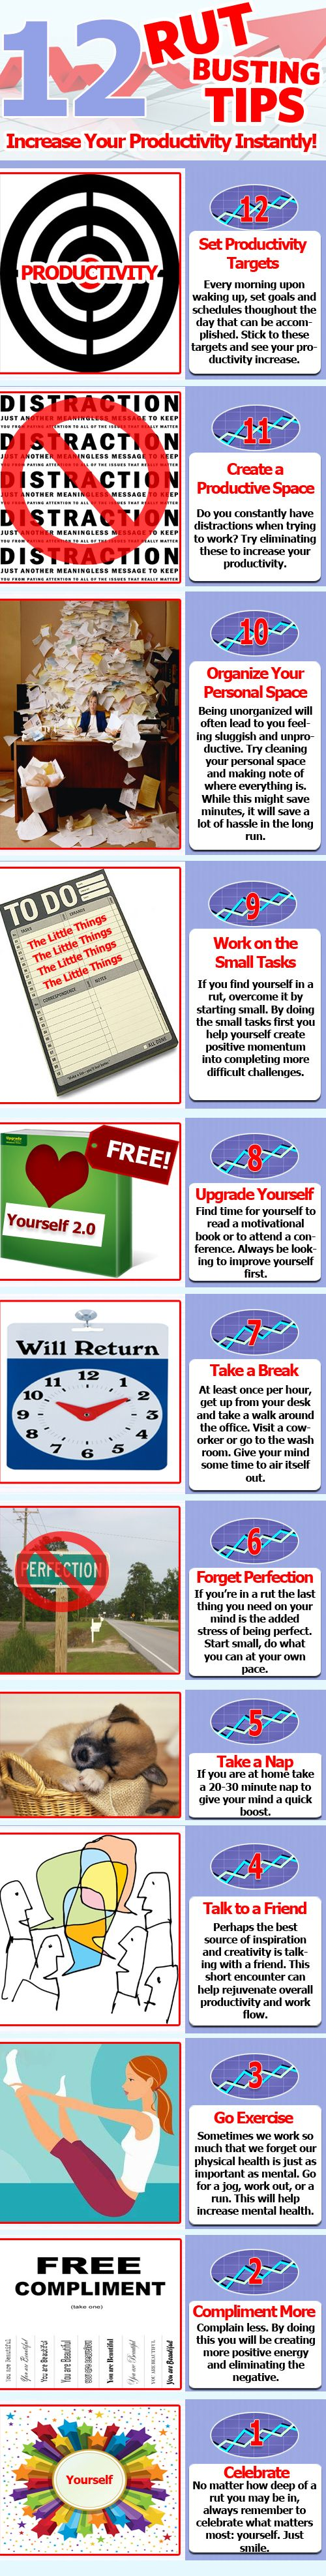 10 steps how to use stress to increase your productivity motivate - 144 Best Productivity Time Project Management Images On Pinterest Project Management Time Management Tips And Personal Development